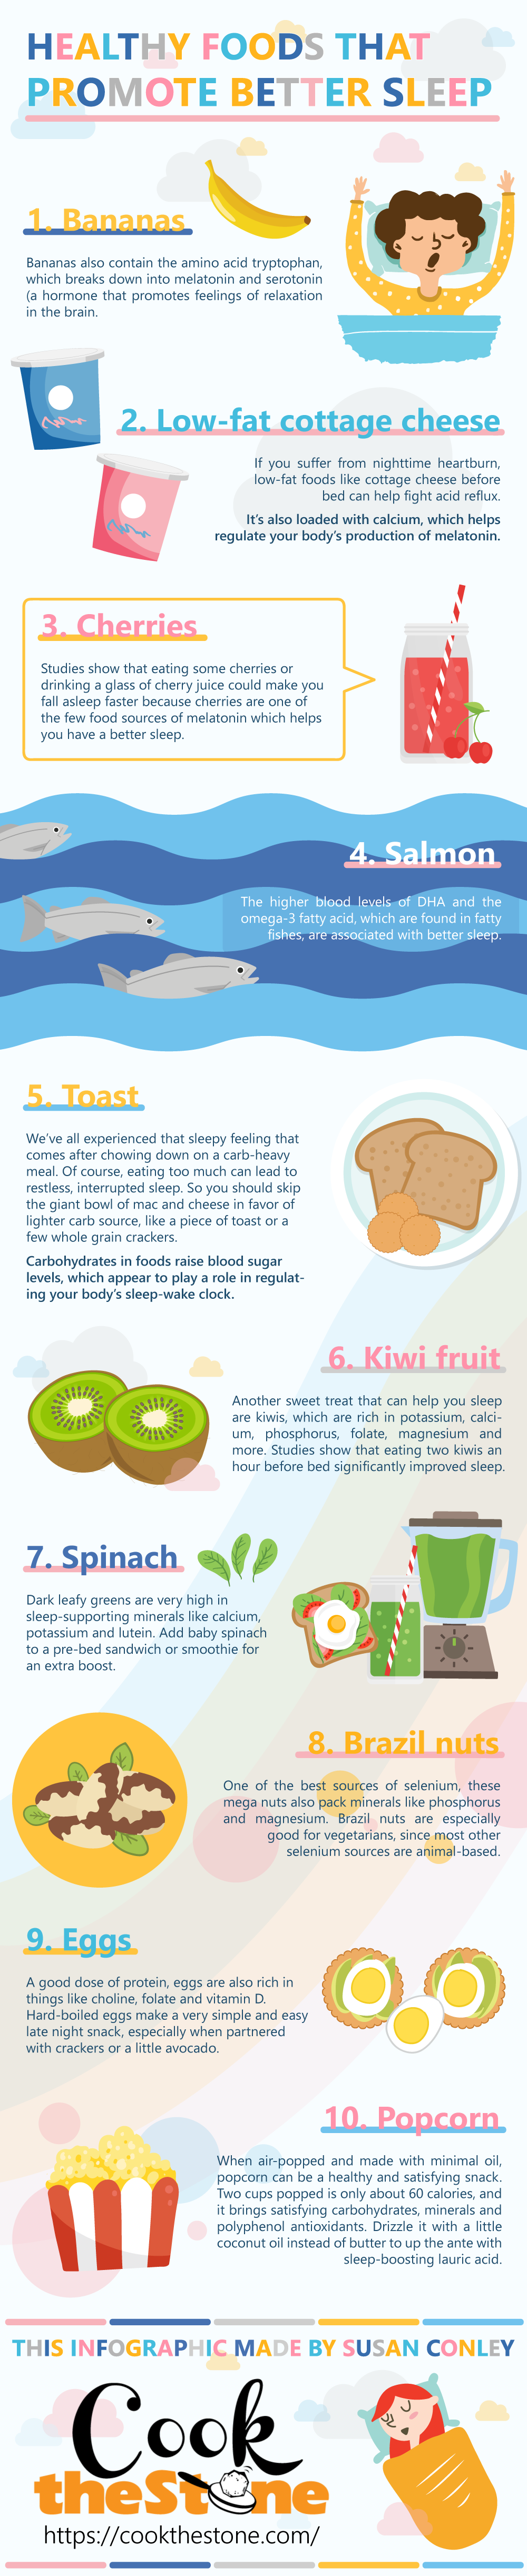 Healthy Foods That Promote Better Sleep Infographic